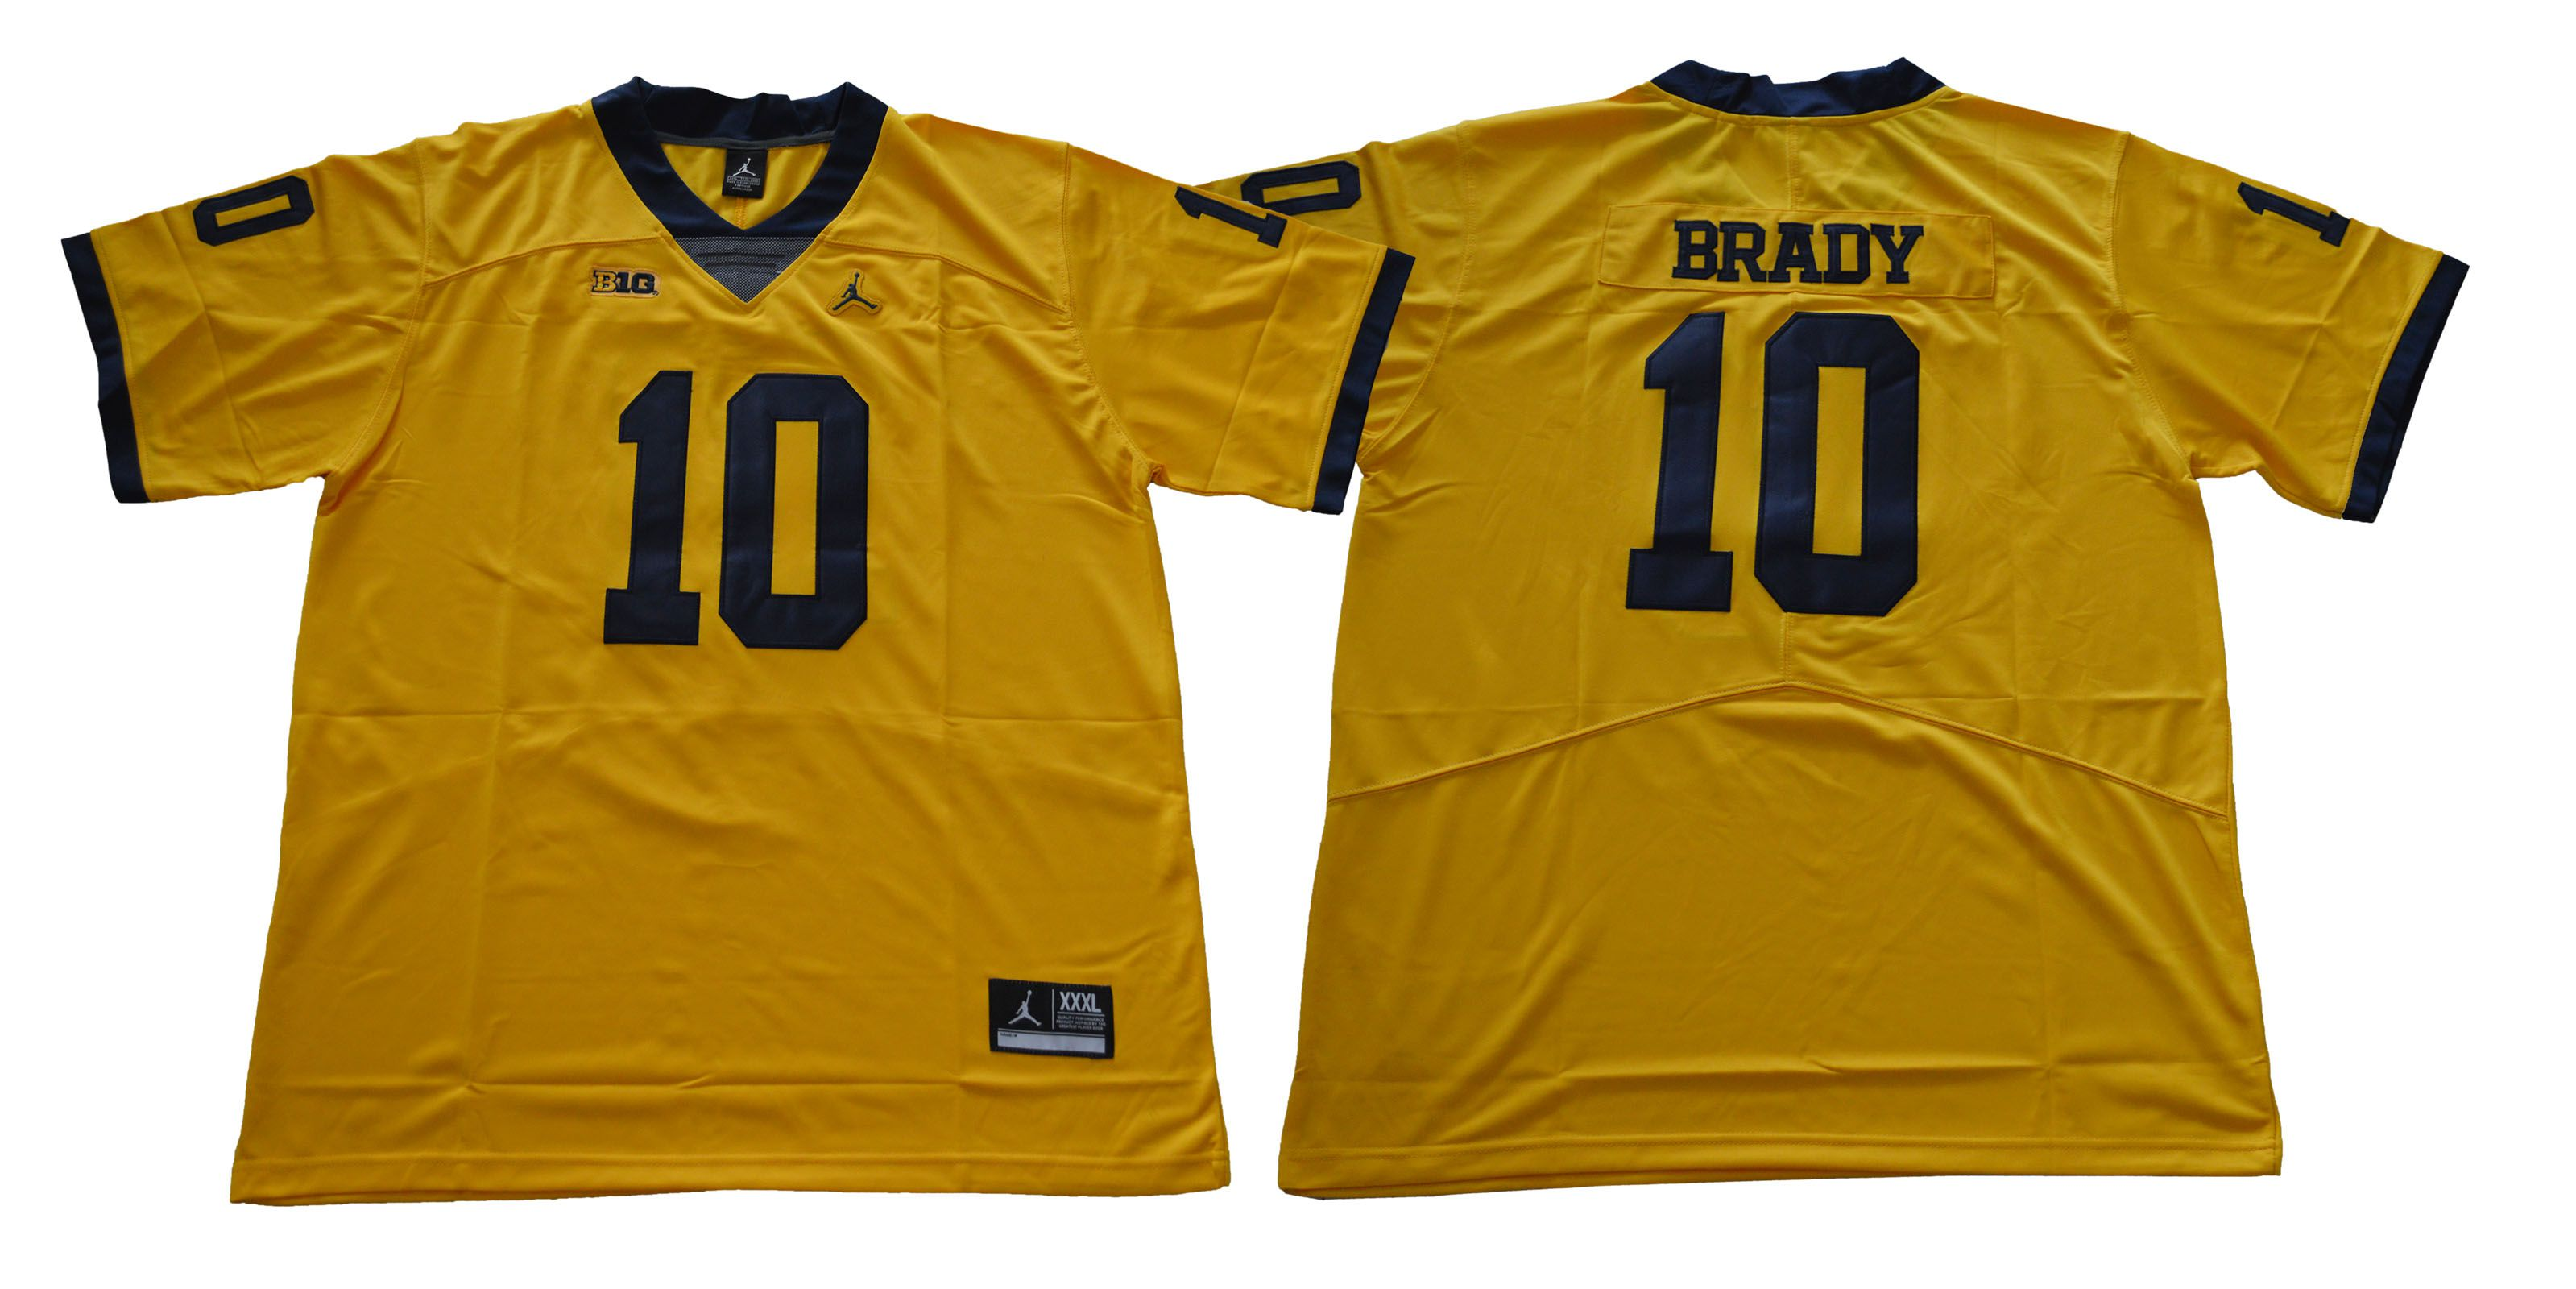 Men Michigan Wolverines 10 Brady Yellow NCAA Jerseys